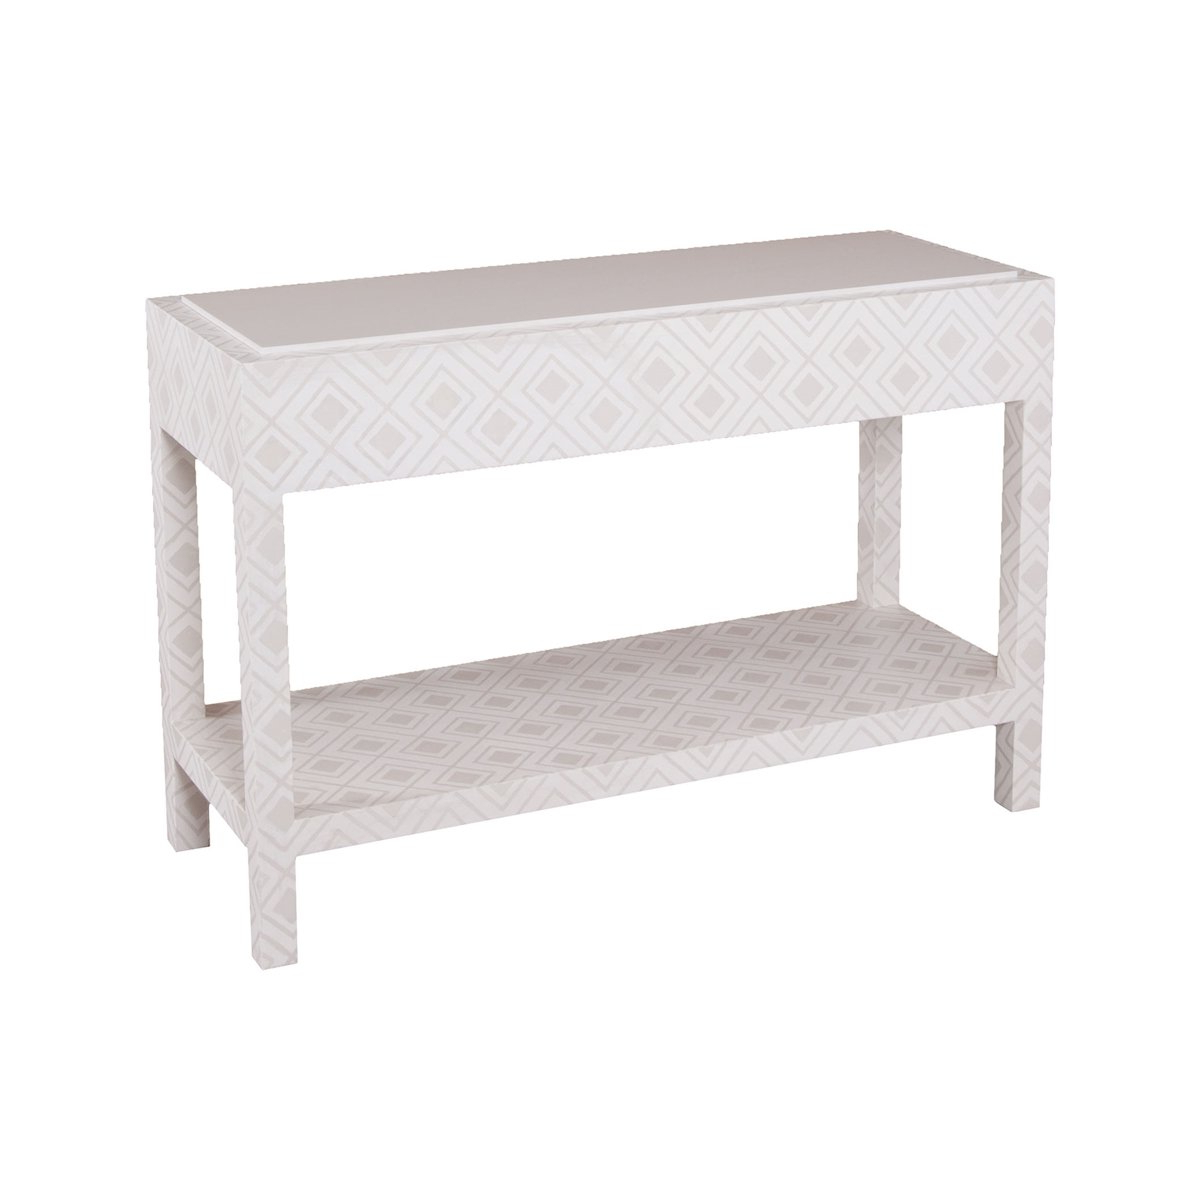 Kent Fabric Wrapped Console | Products In 2018 | Pinterest With Regard To Parsons White Marble Top & Stainless Steel Base 48x16 Console Tables (View 18 of 20)